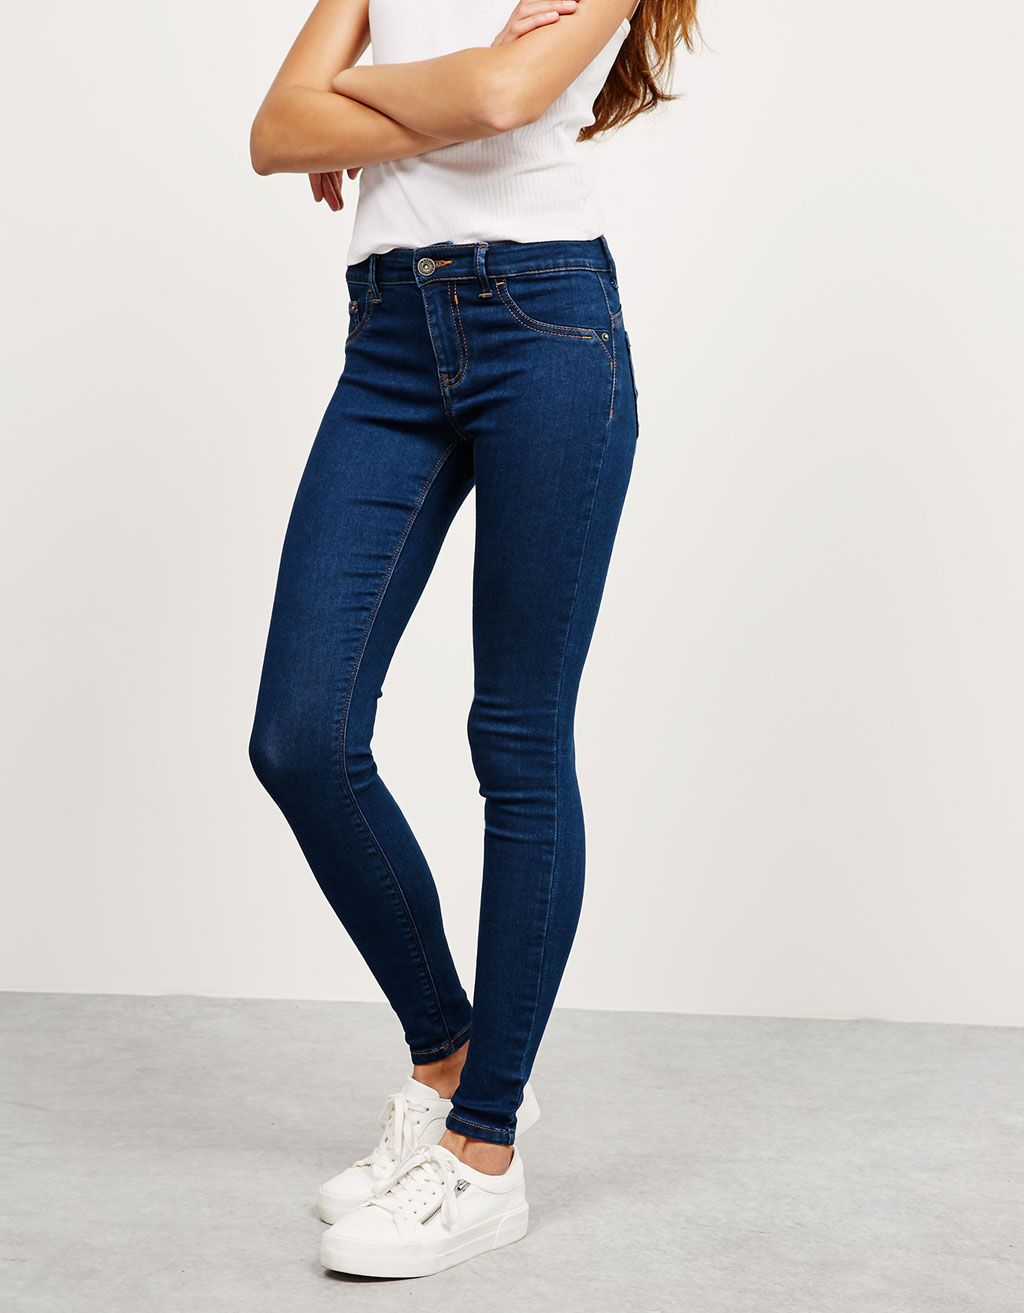 2e9a2d4d807 BSK push up jeans. Discover this and many more items in Bershka with new  products every week